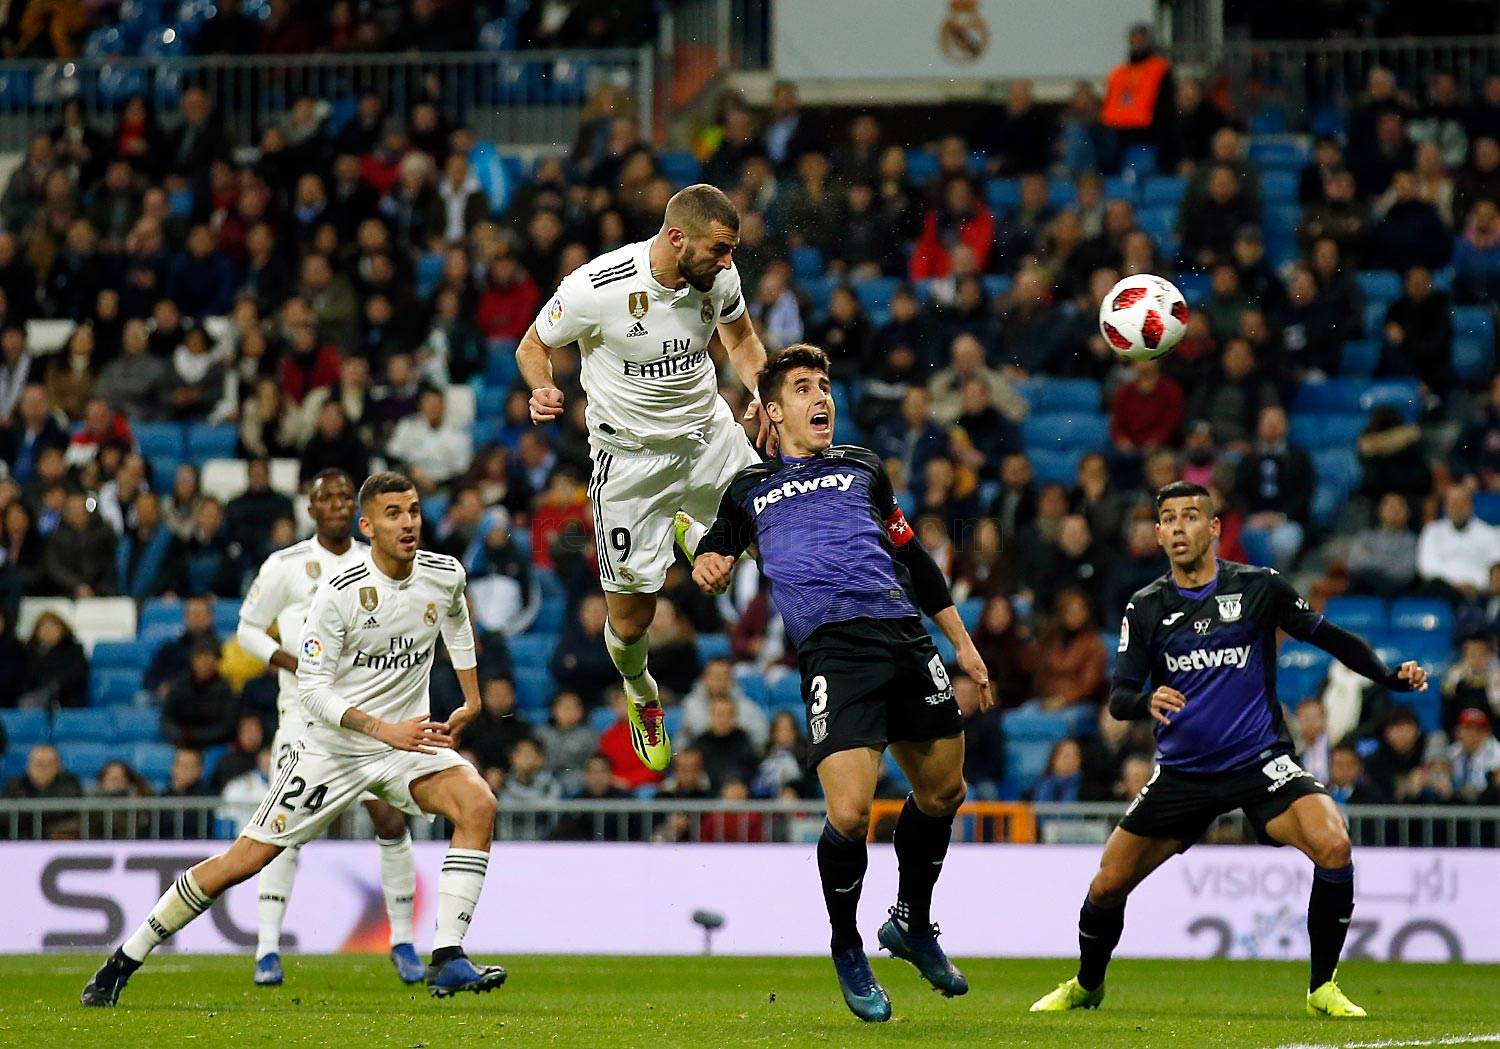 Real Madrid - Real Madrid - Leganés - 09-01-2019